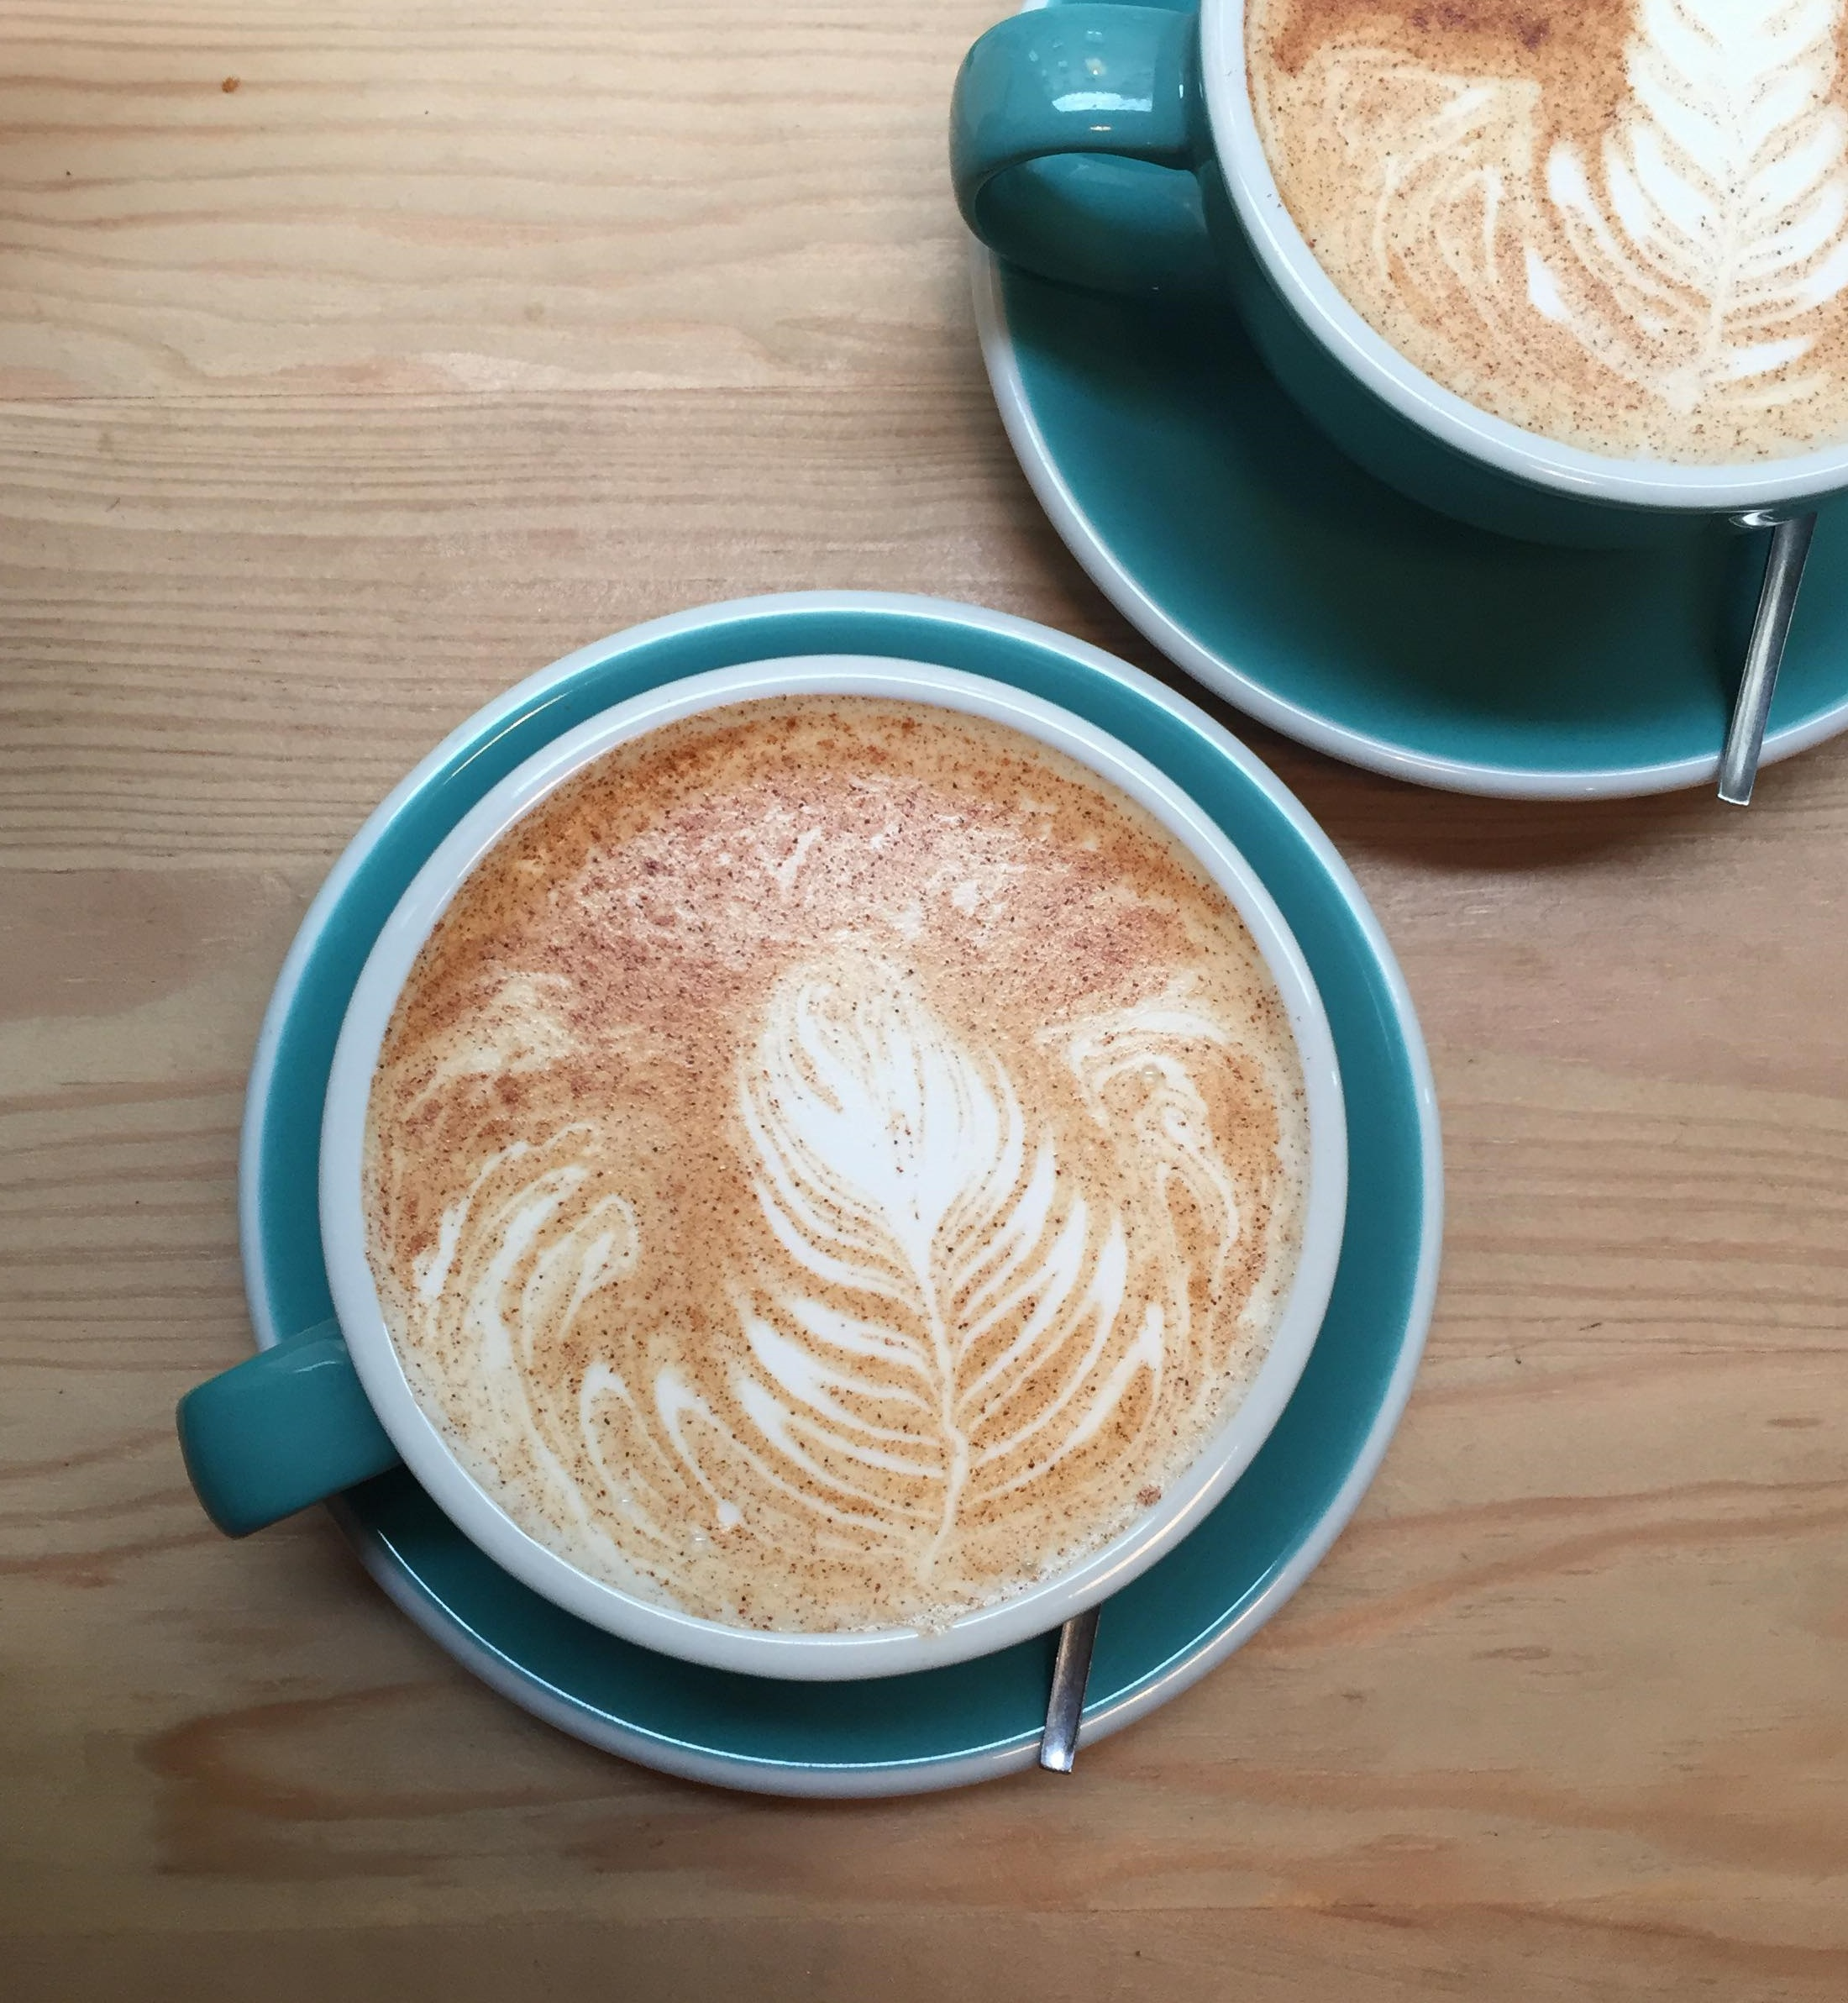 chaï latte à Bordeaux - blog bons plans à Bordeaux